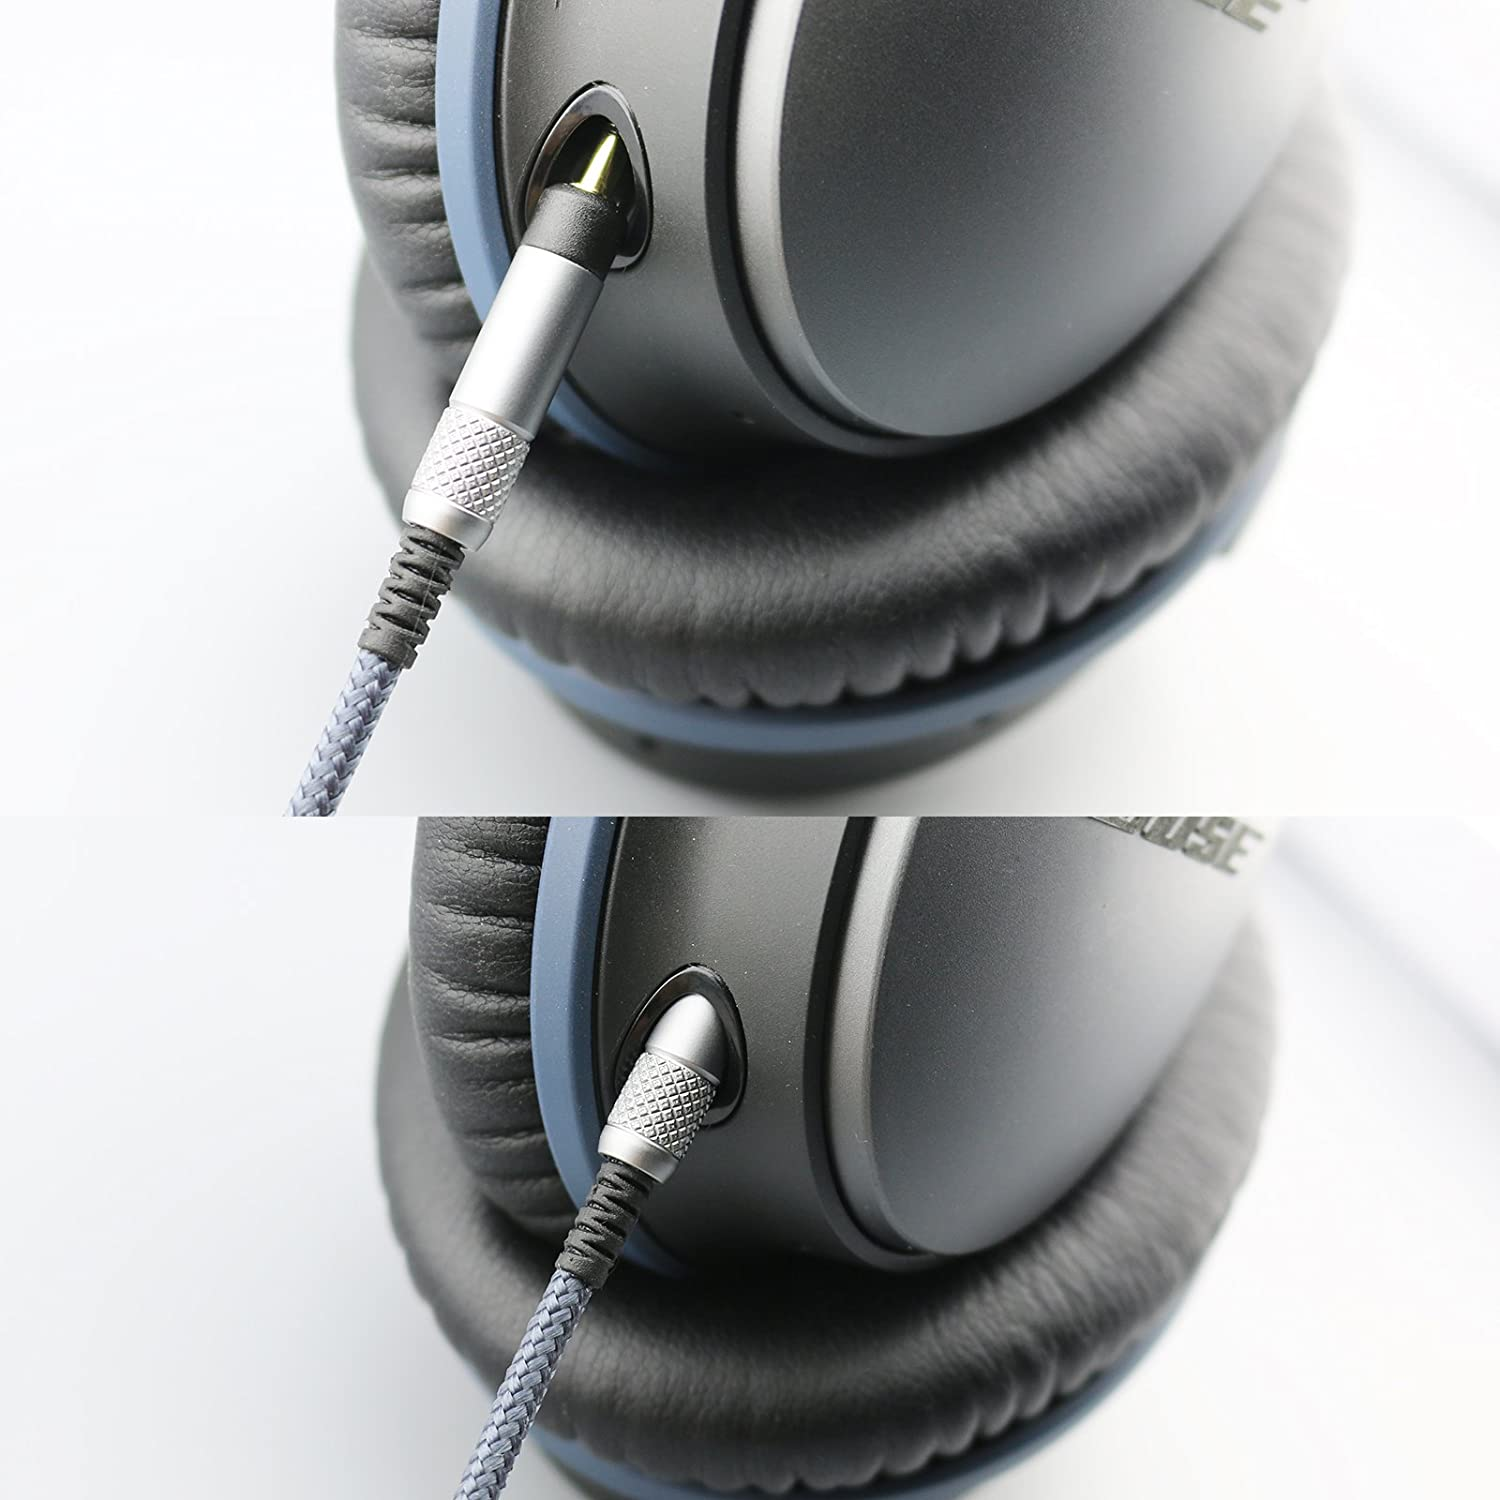 QC35 QuietComfort 25 Audio Cable with in-Line Mic Remote Volume Compatible with Bose QC25 QuietComfort 35 Headphone and Compatible with iPhone iPod ipad Apple Devices